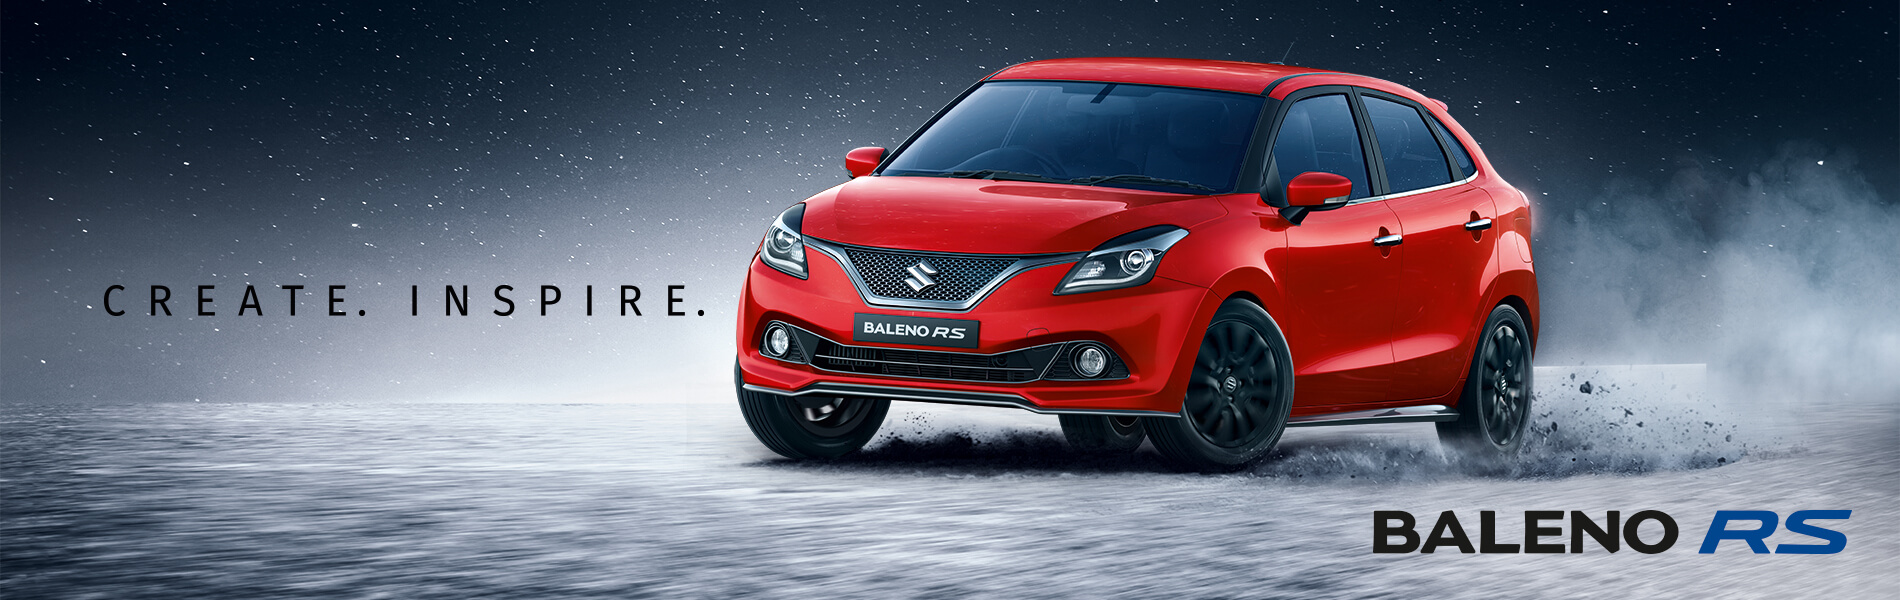 Baleno RS - Create. Inspire. Banner